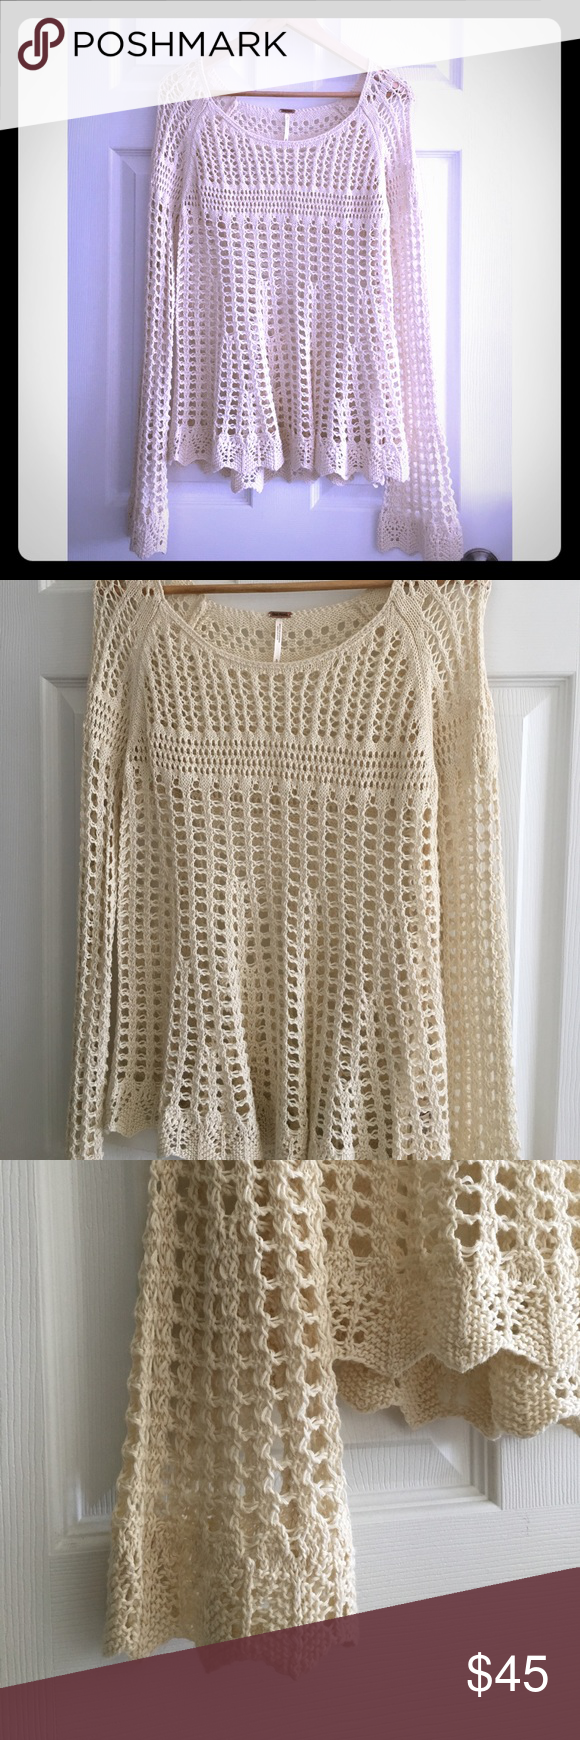 Free People Crochet Sweater NWOT Small Up for sale is Free People Crochet Sweater as shown on the photos. Lightweight. Color: Ivory. Size Small. Please note: New without tags. Never been worn. Perfect condition. No holes, stains or tears. Free People Sweaters